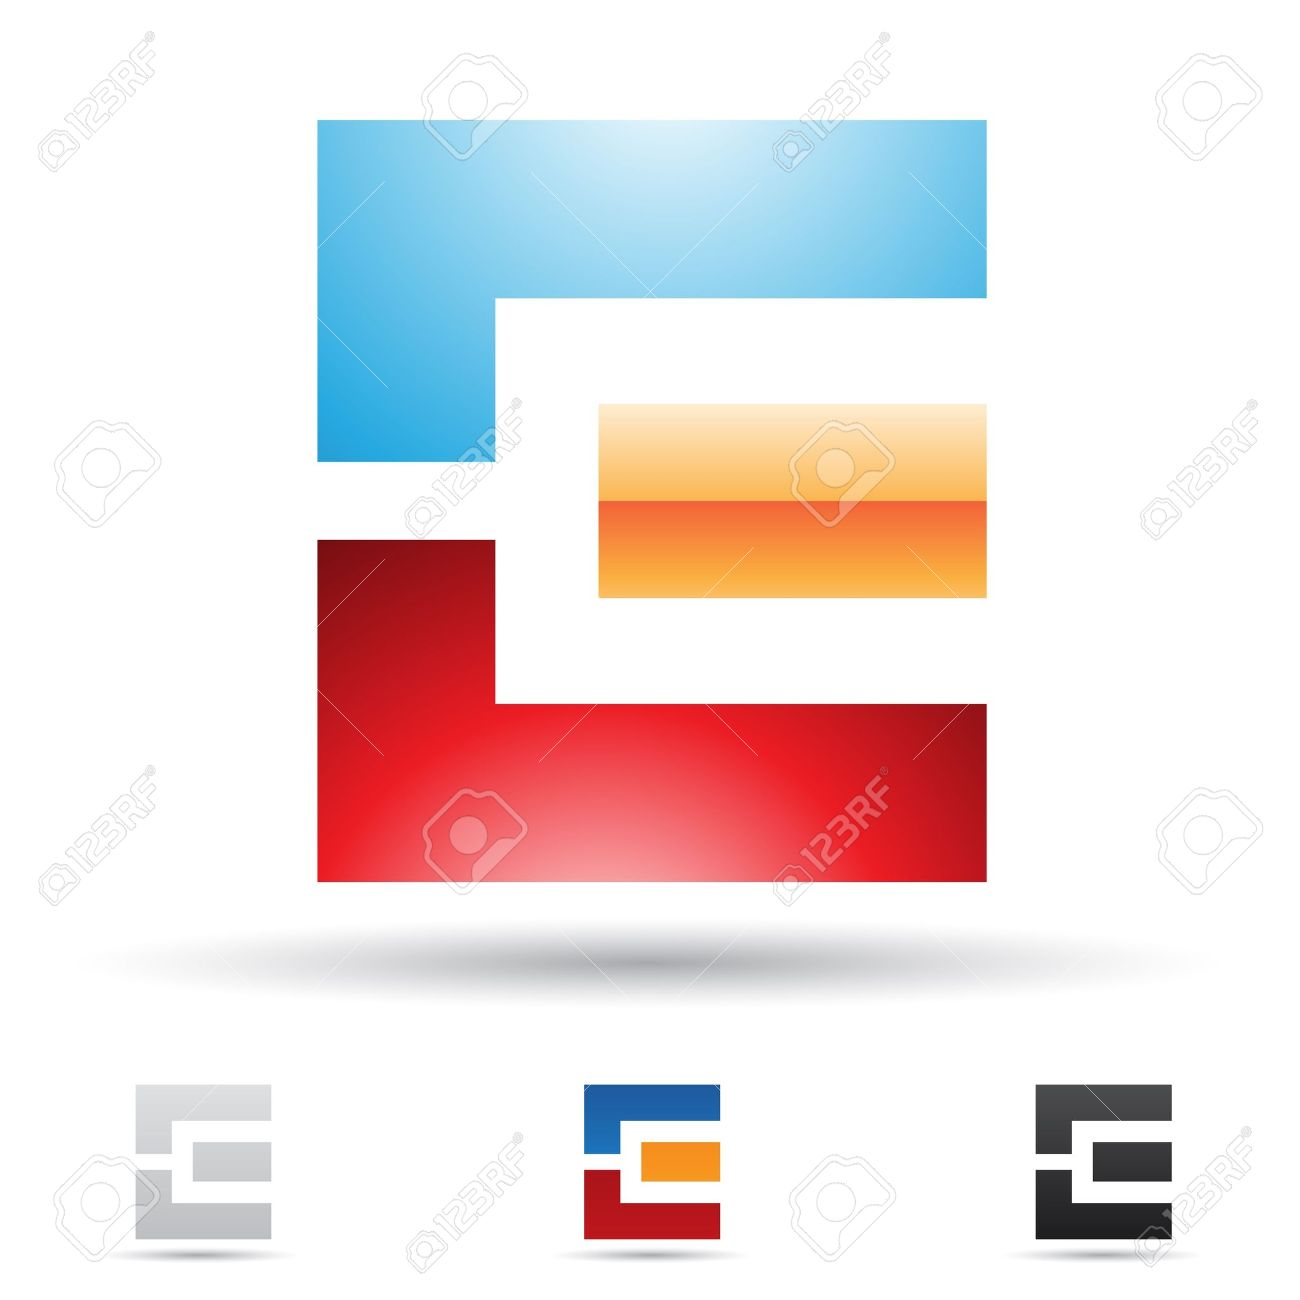 illustration of abstract icons based on the letter E Stock Vector - 14621678